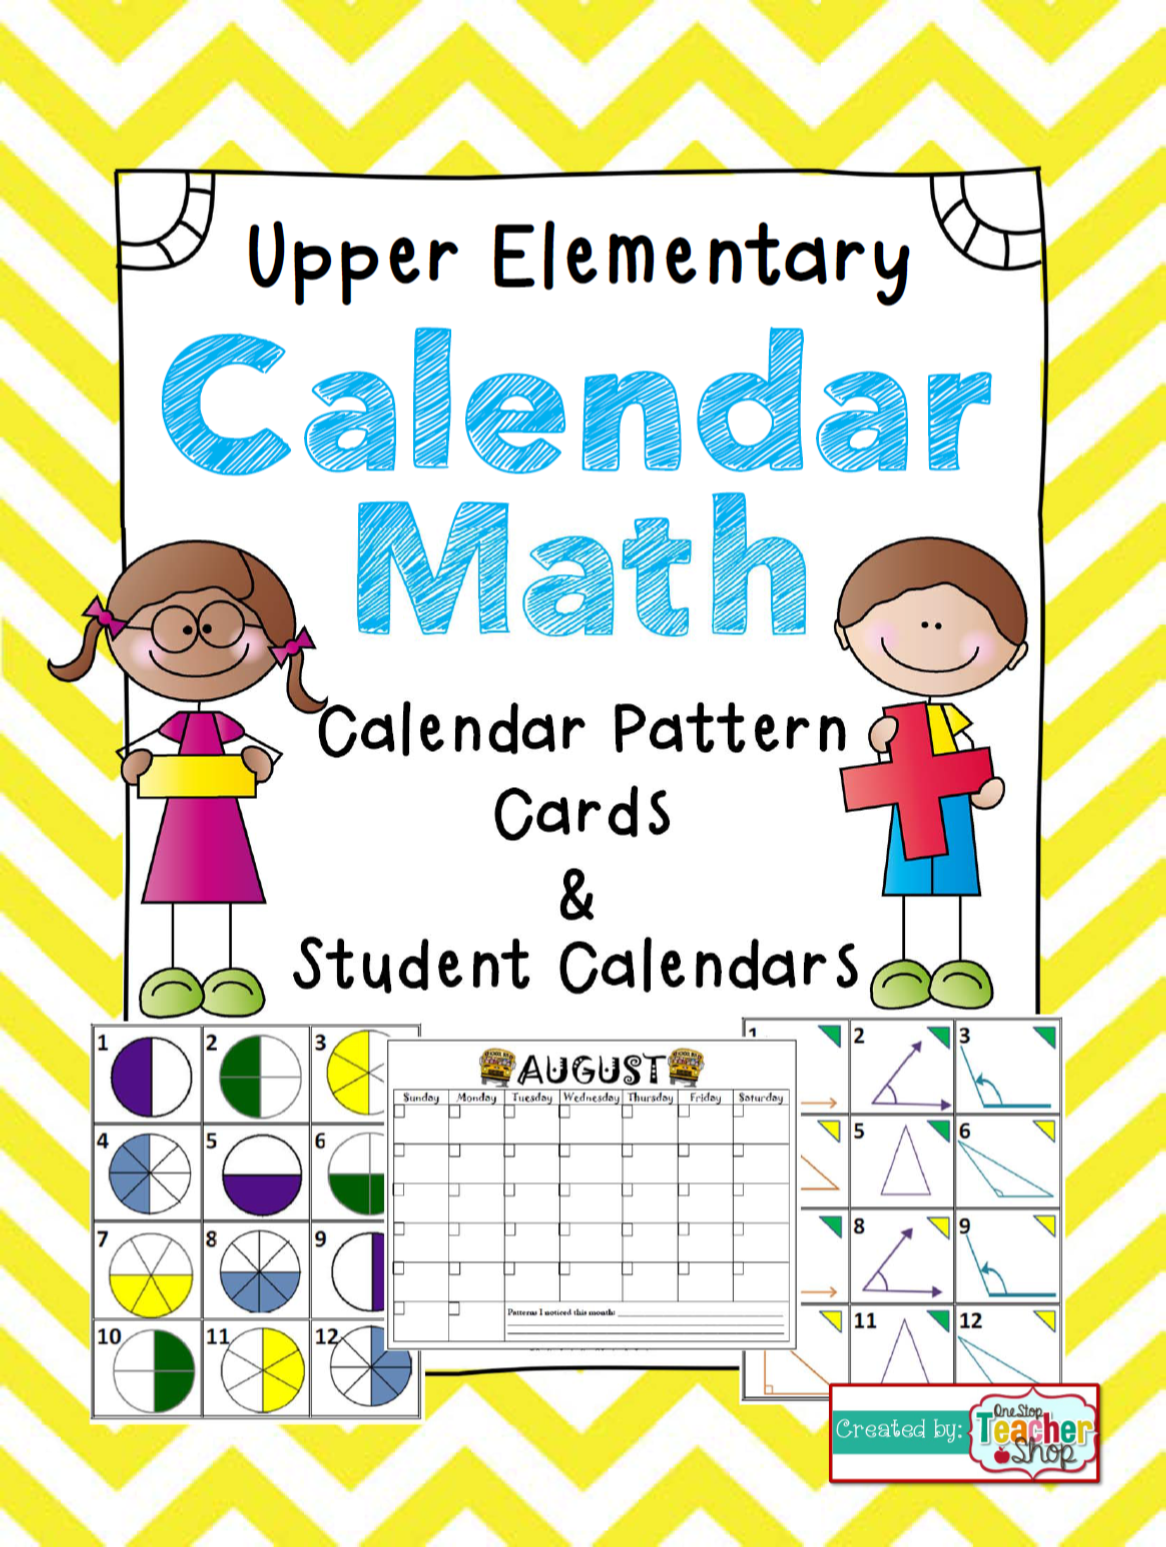 Calendar Math For Upper Elementary Calendar Pattern Cards Amp Student Calendars For The Entire